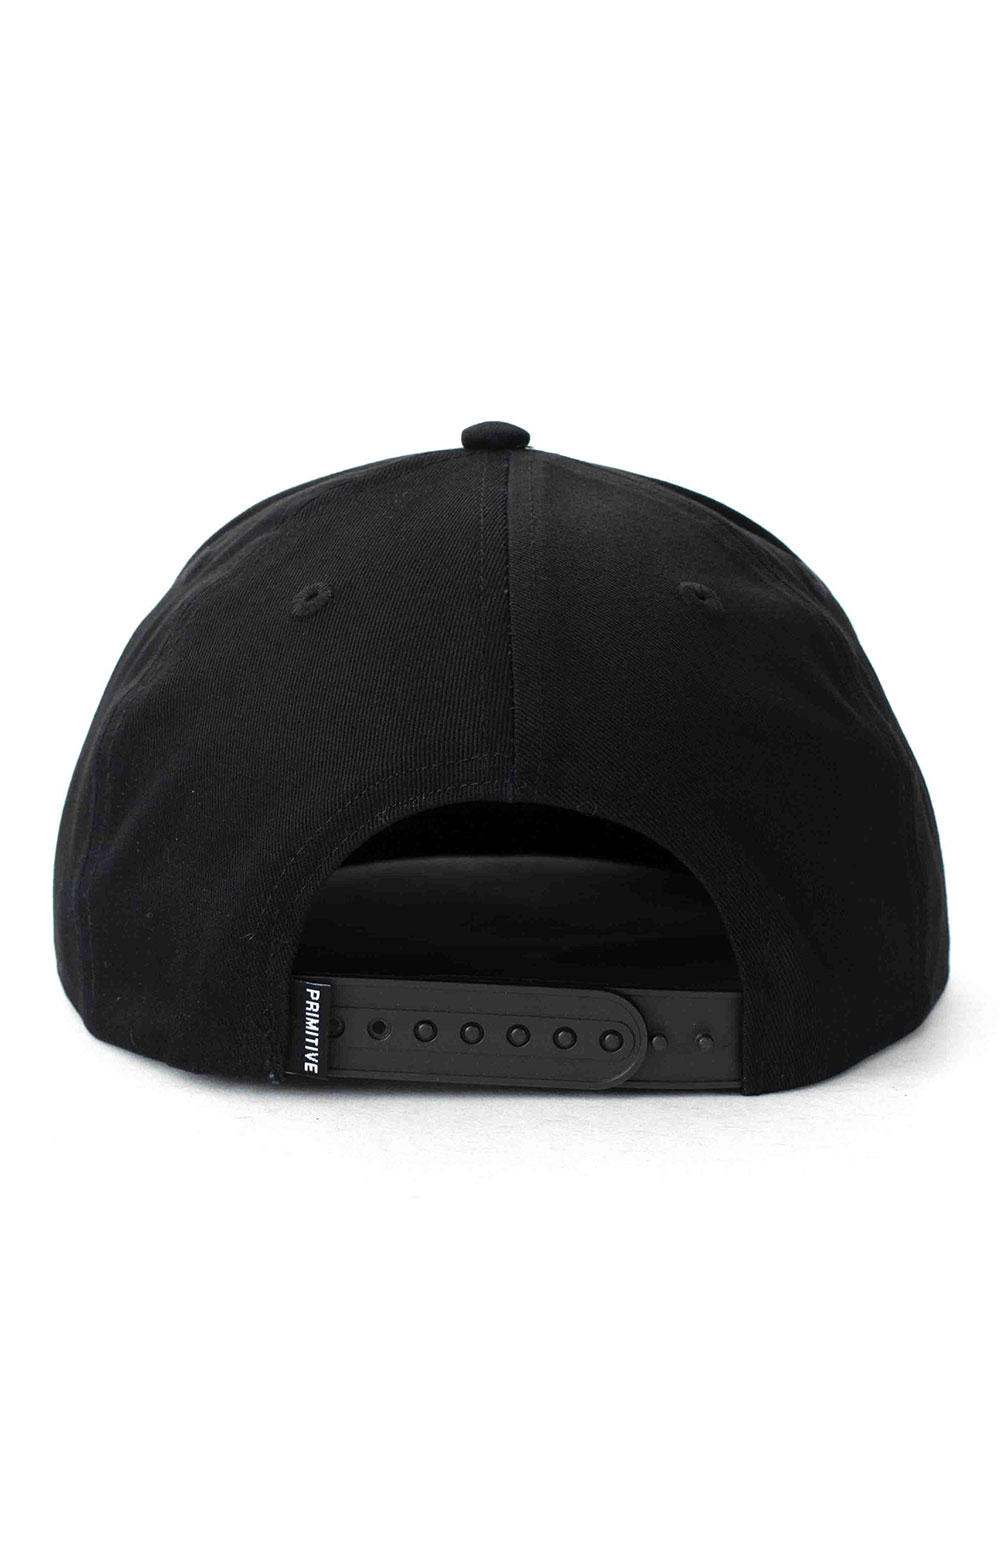 Dirty P Chenille Snap-Back Hat - Black  4